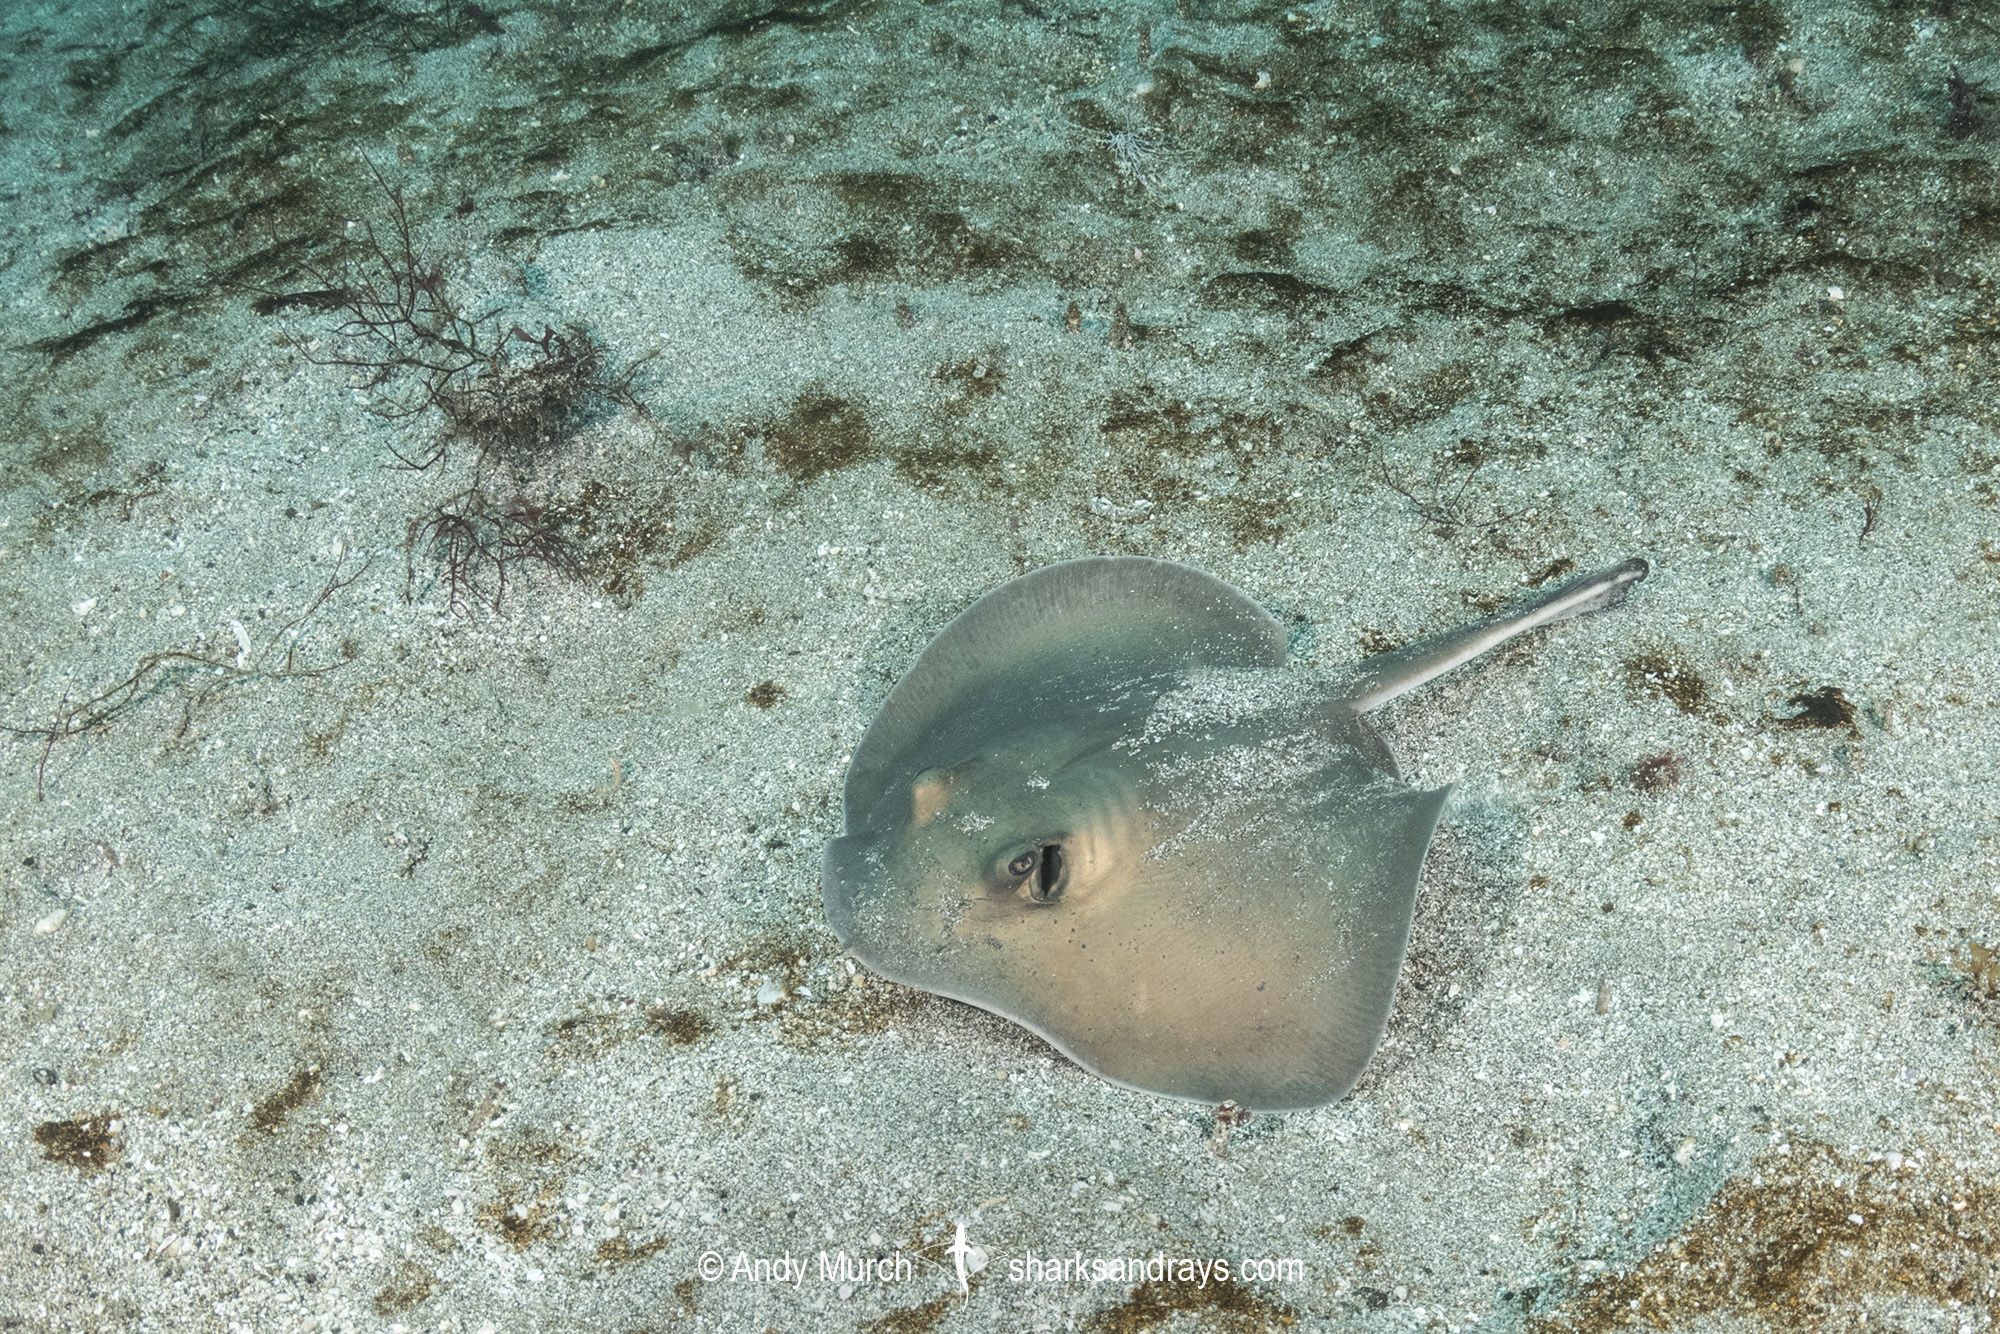 Diamond Stingray juvenile